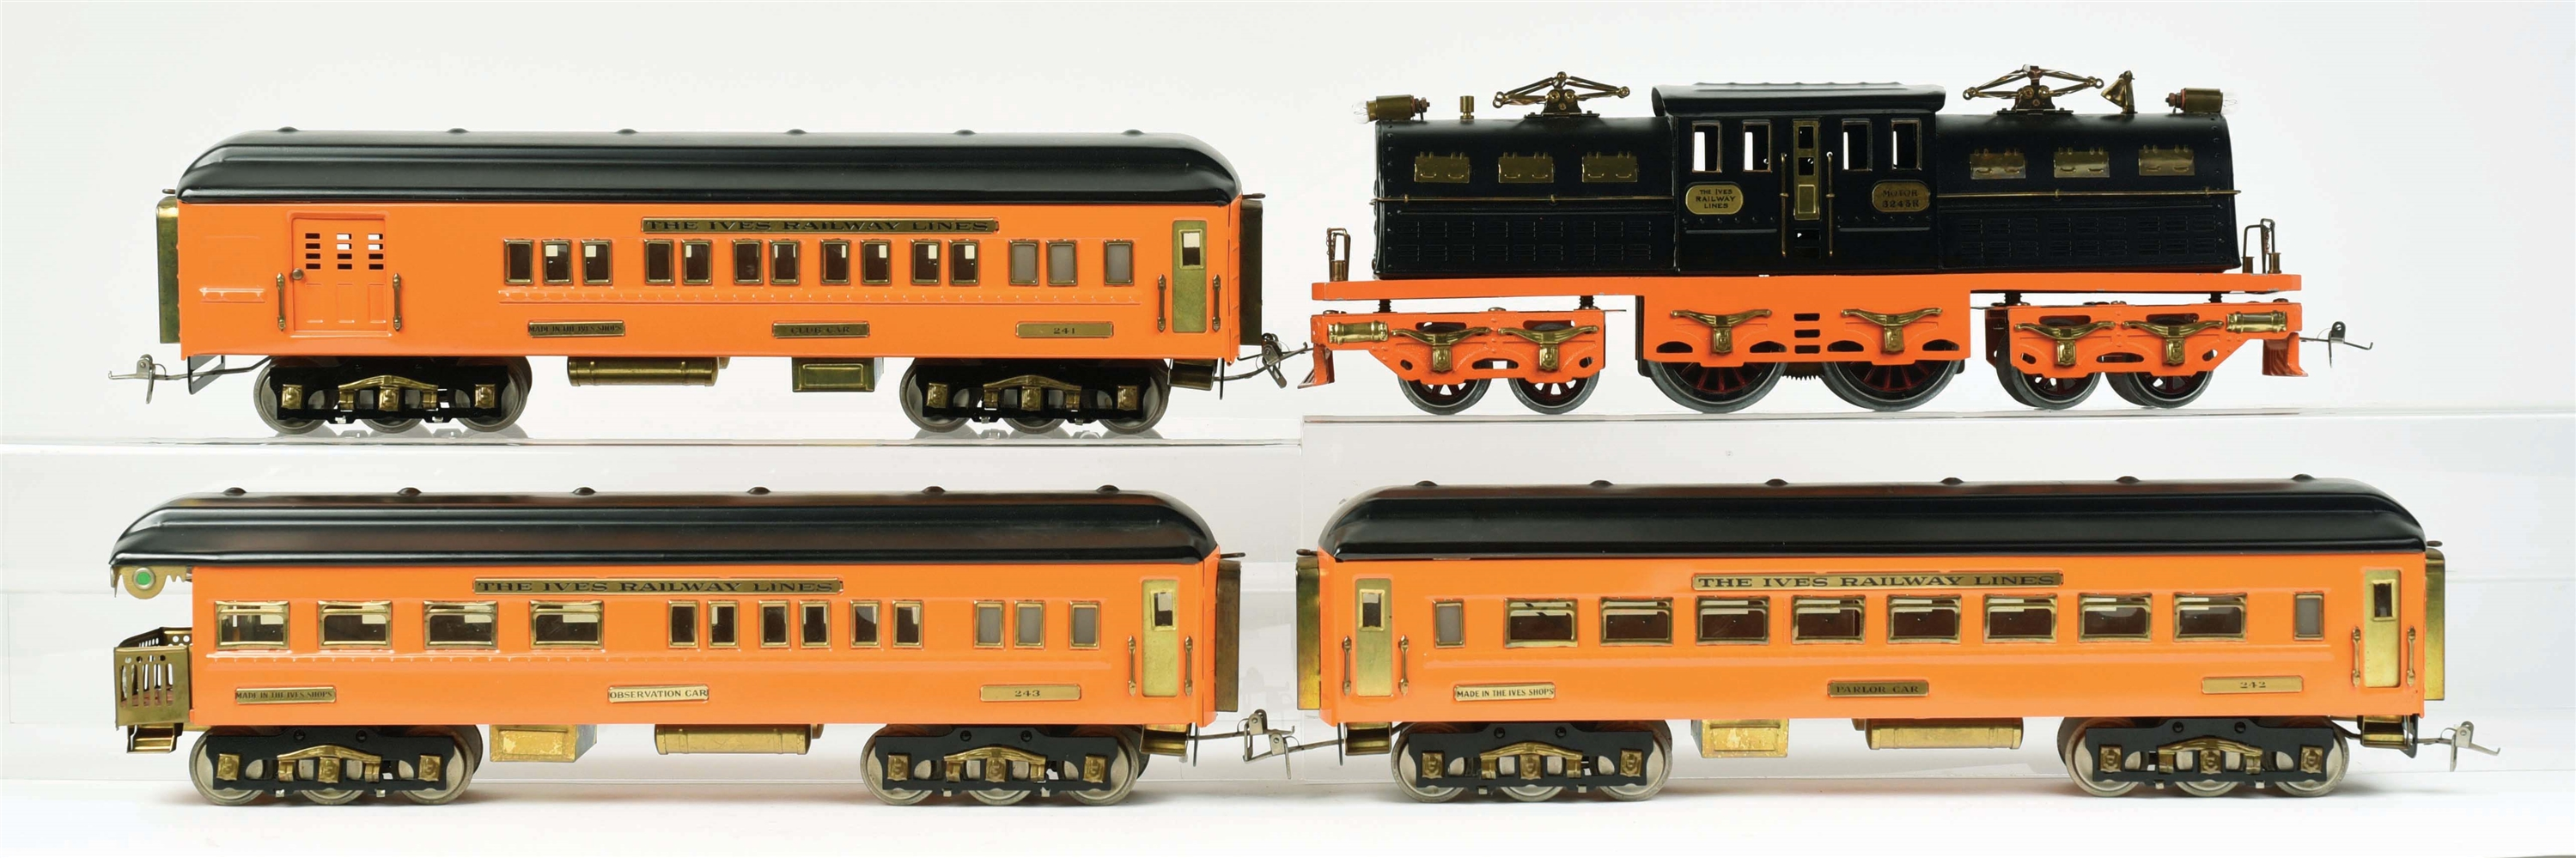 CONTEMPORARY IVES REPRODUCTION OLYMPIAN PASSENGER TRAIN SET.